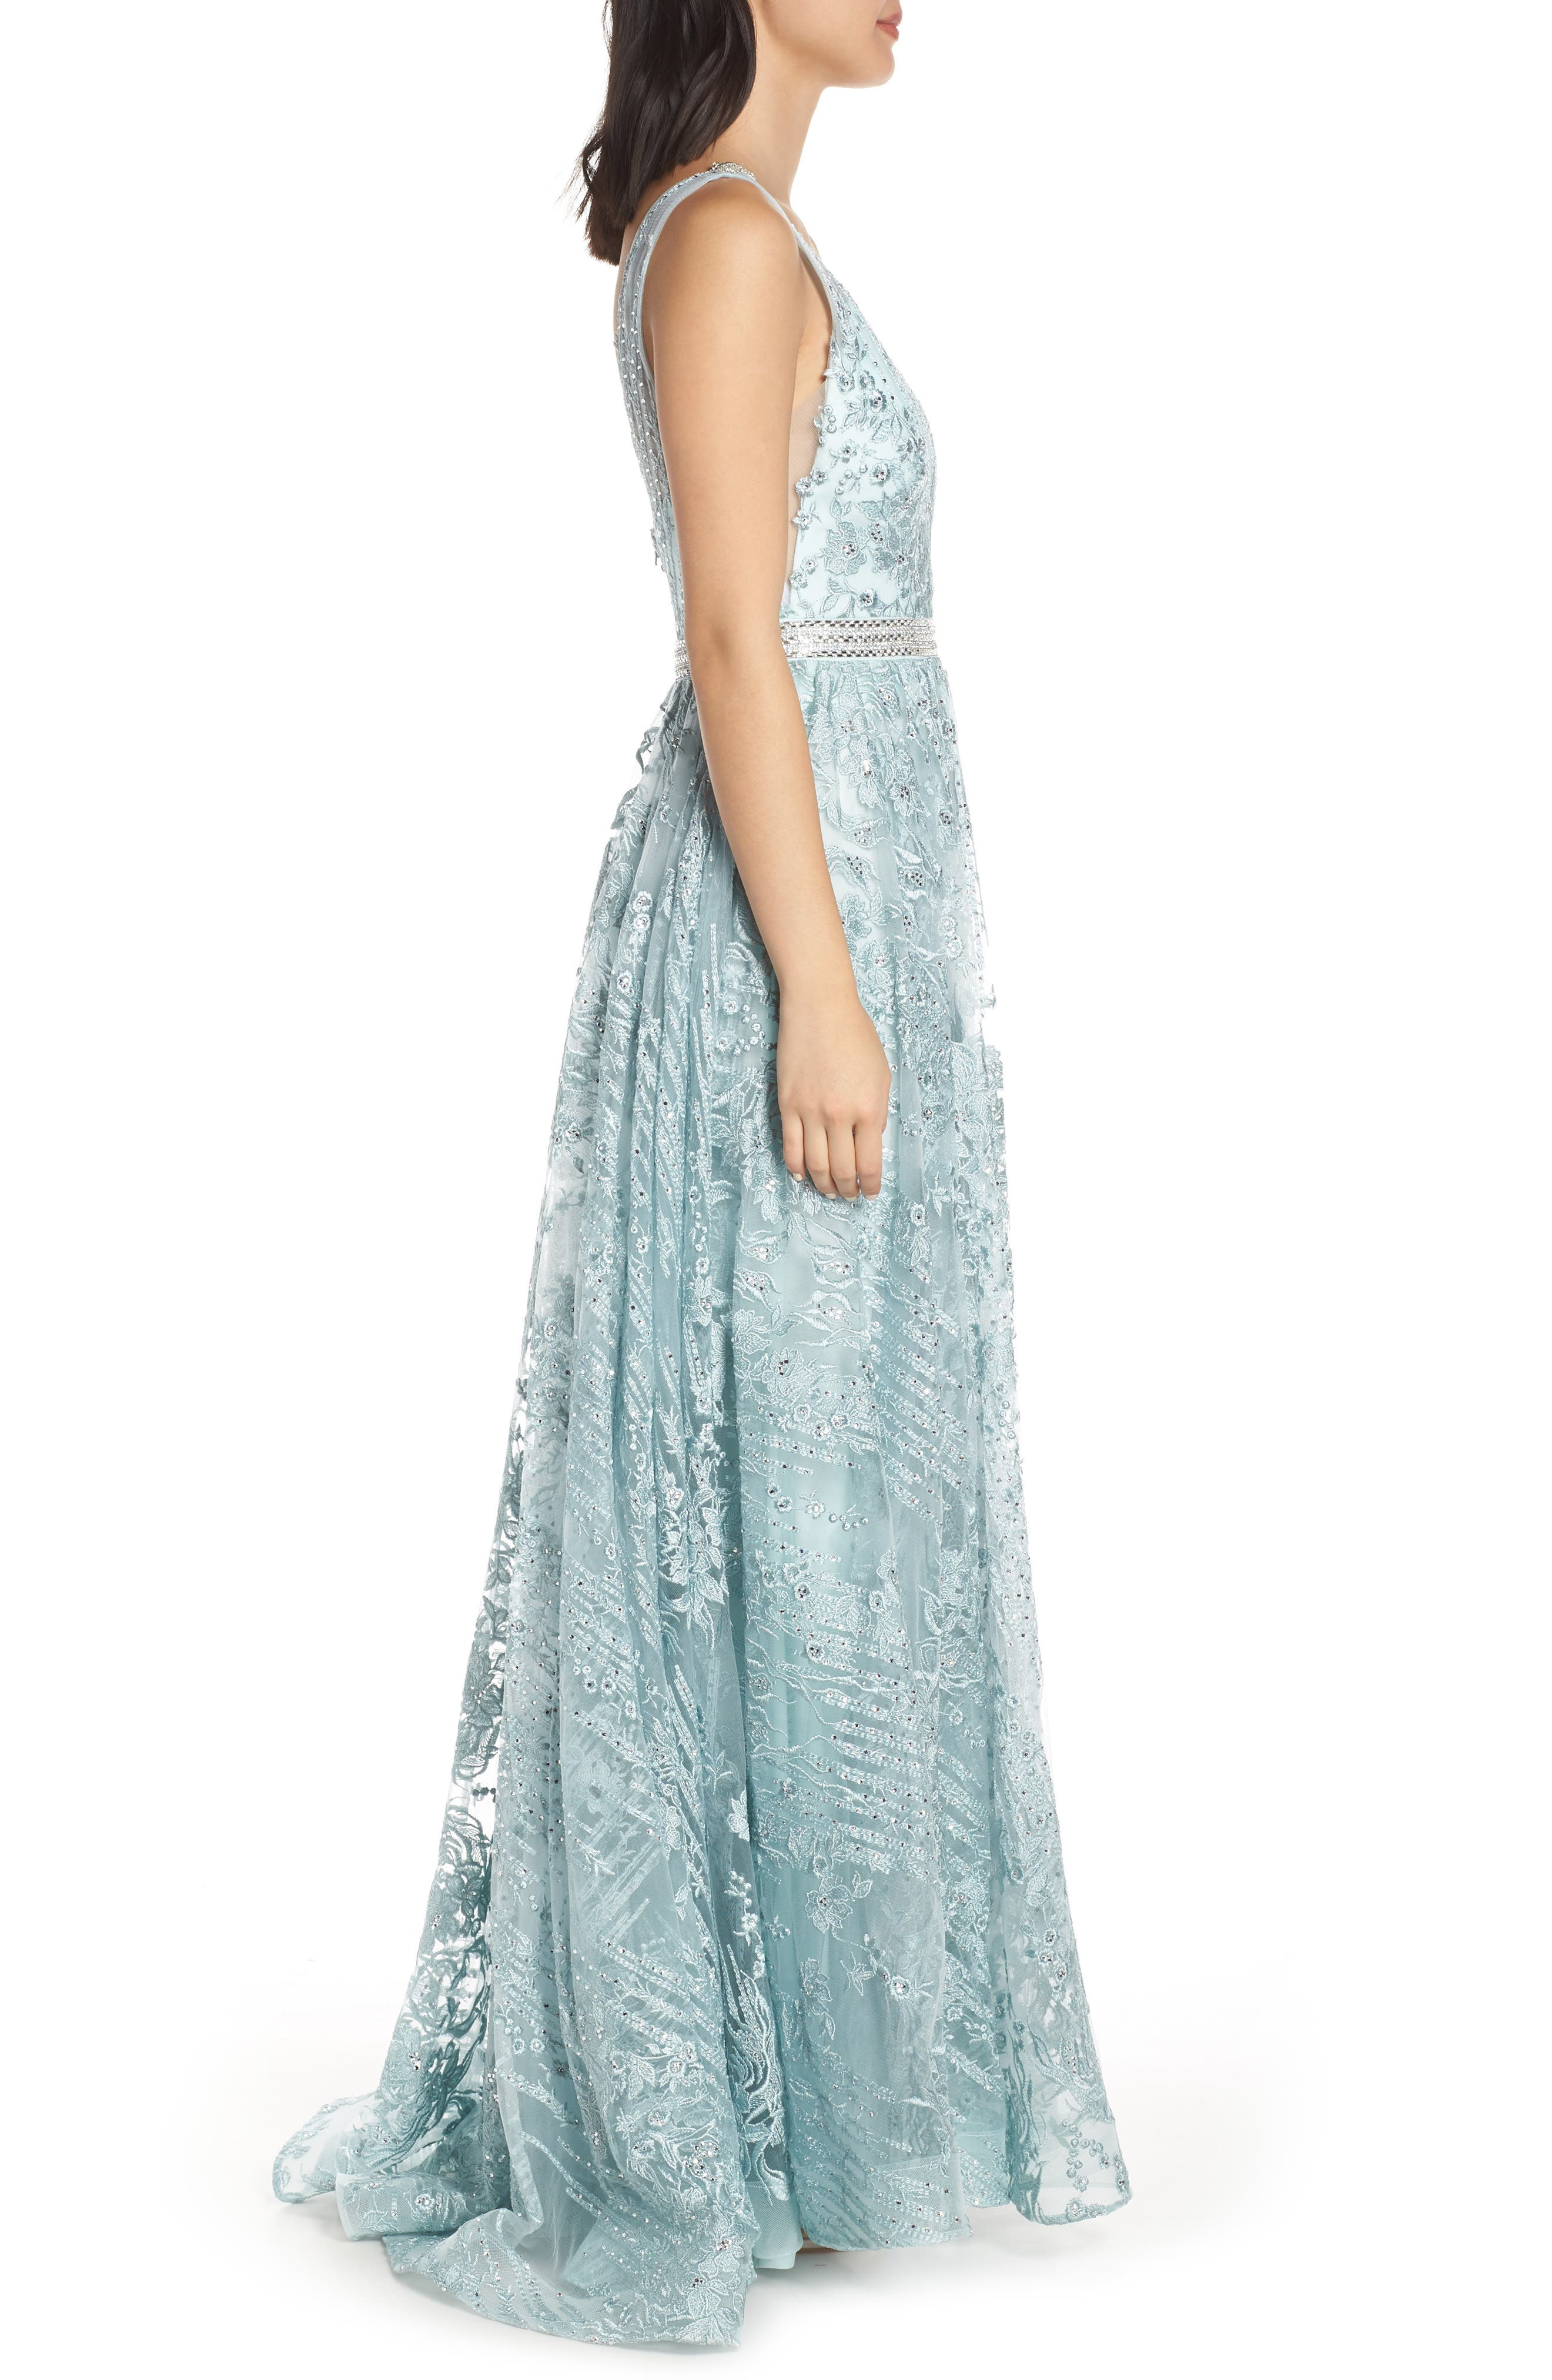 MAC DUGGAL, Beaded & Embroidered Chiffon Evening Dress, Alternate thumbnail 4, color, SEAMIST